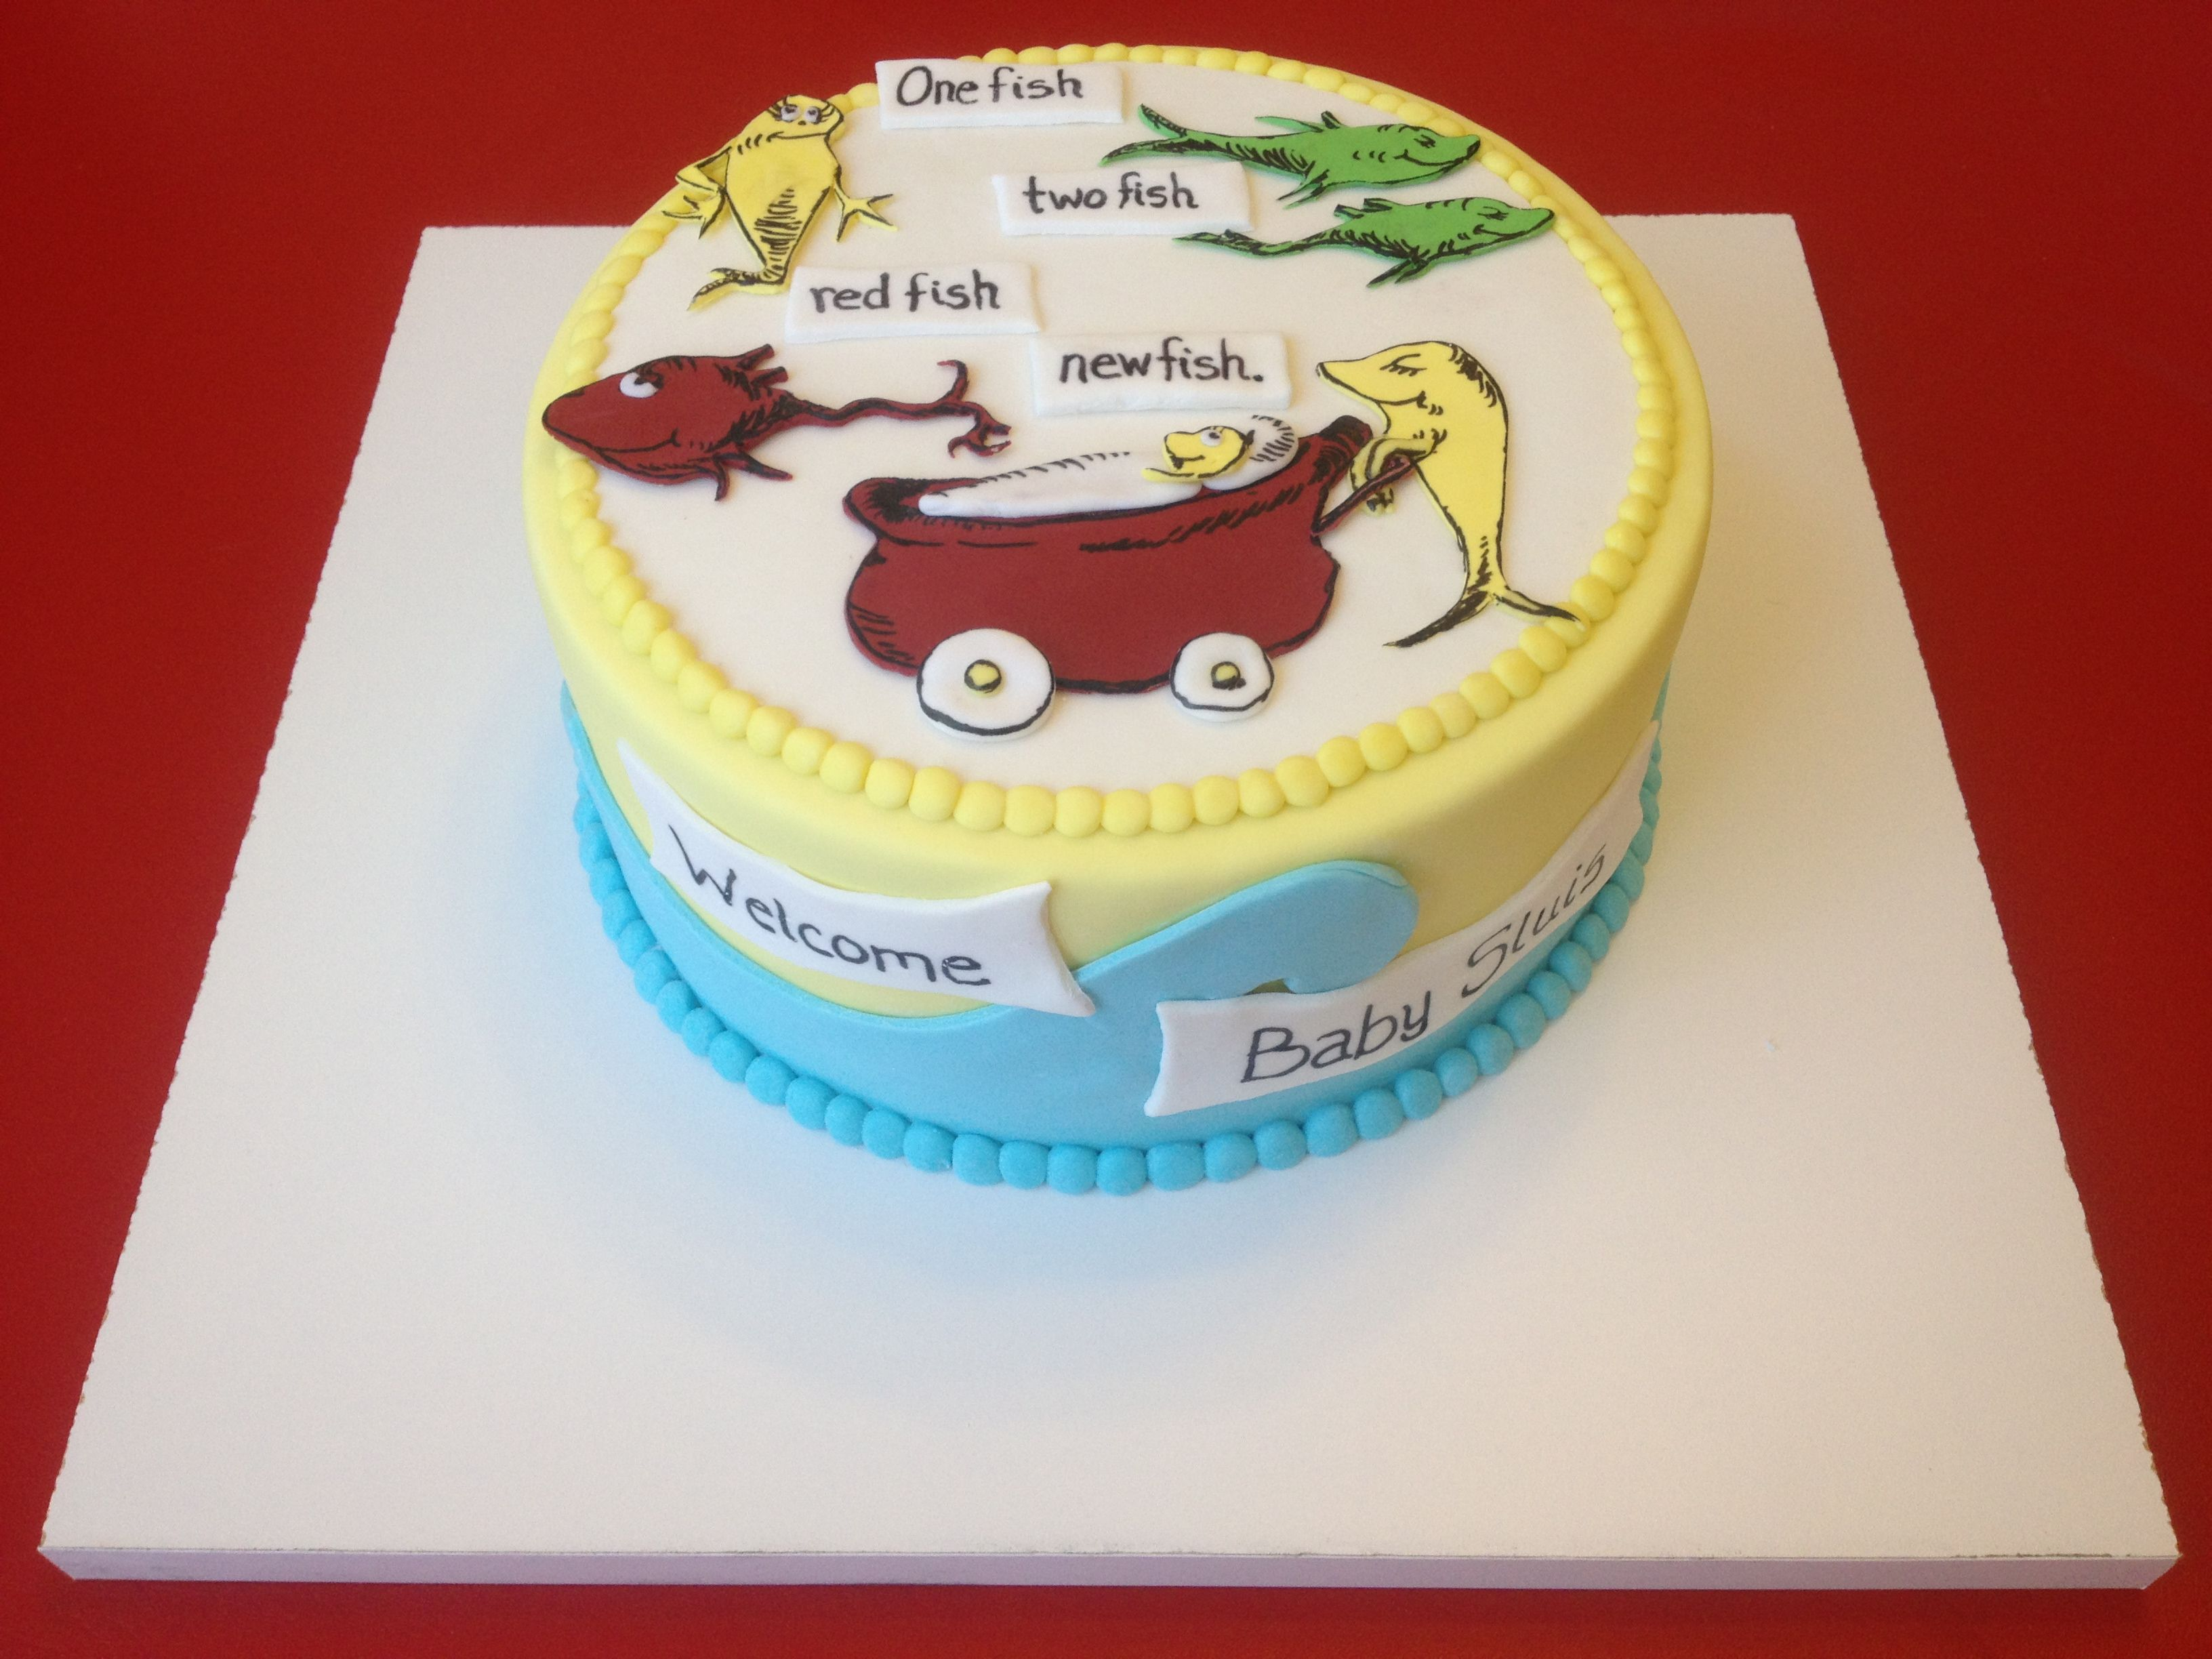 High Quality Dr. Seuss Baby Cake   All Marshmallow Fondant. Fishes And Carriage Are  Gumpaste With